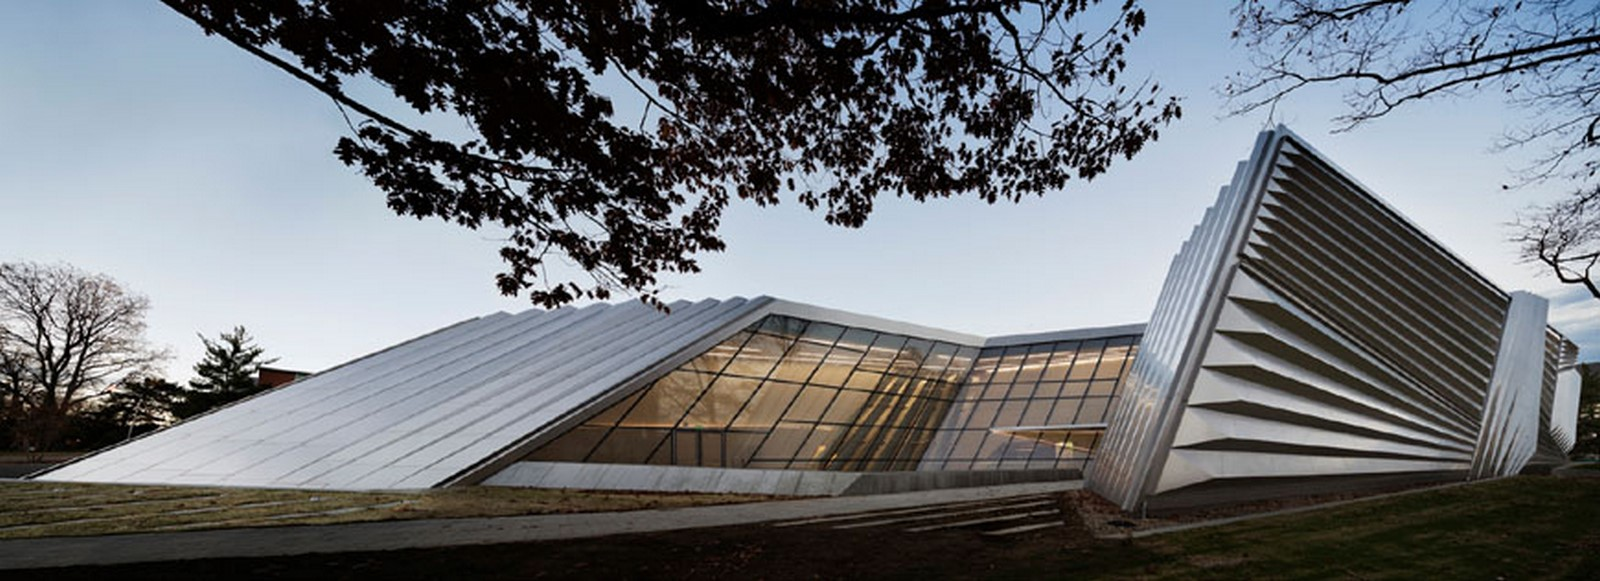 Eli and Edythe Broad Art Museum by Zaha Hadid: Pleated Architecture - Sheet1